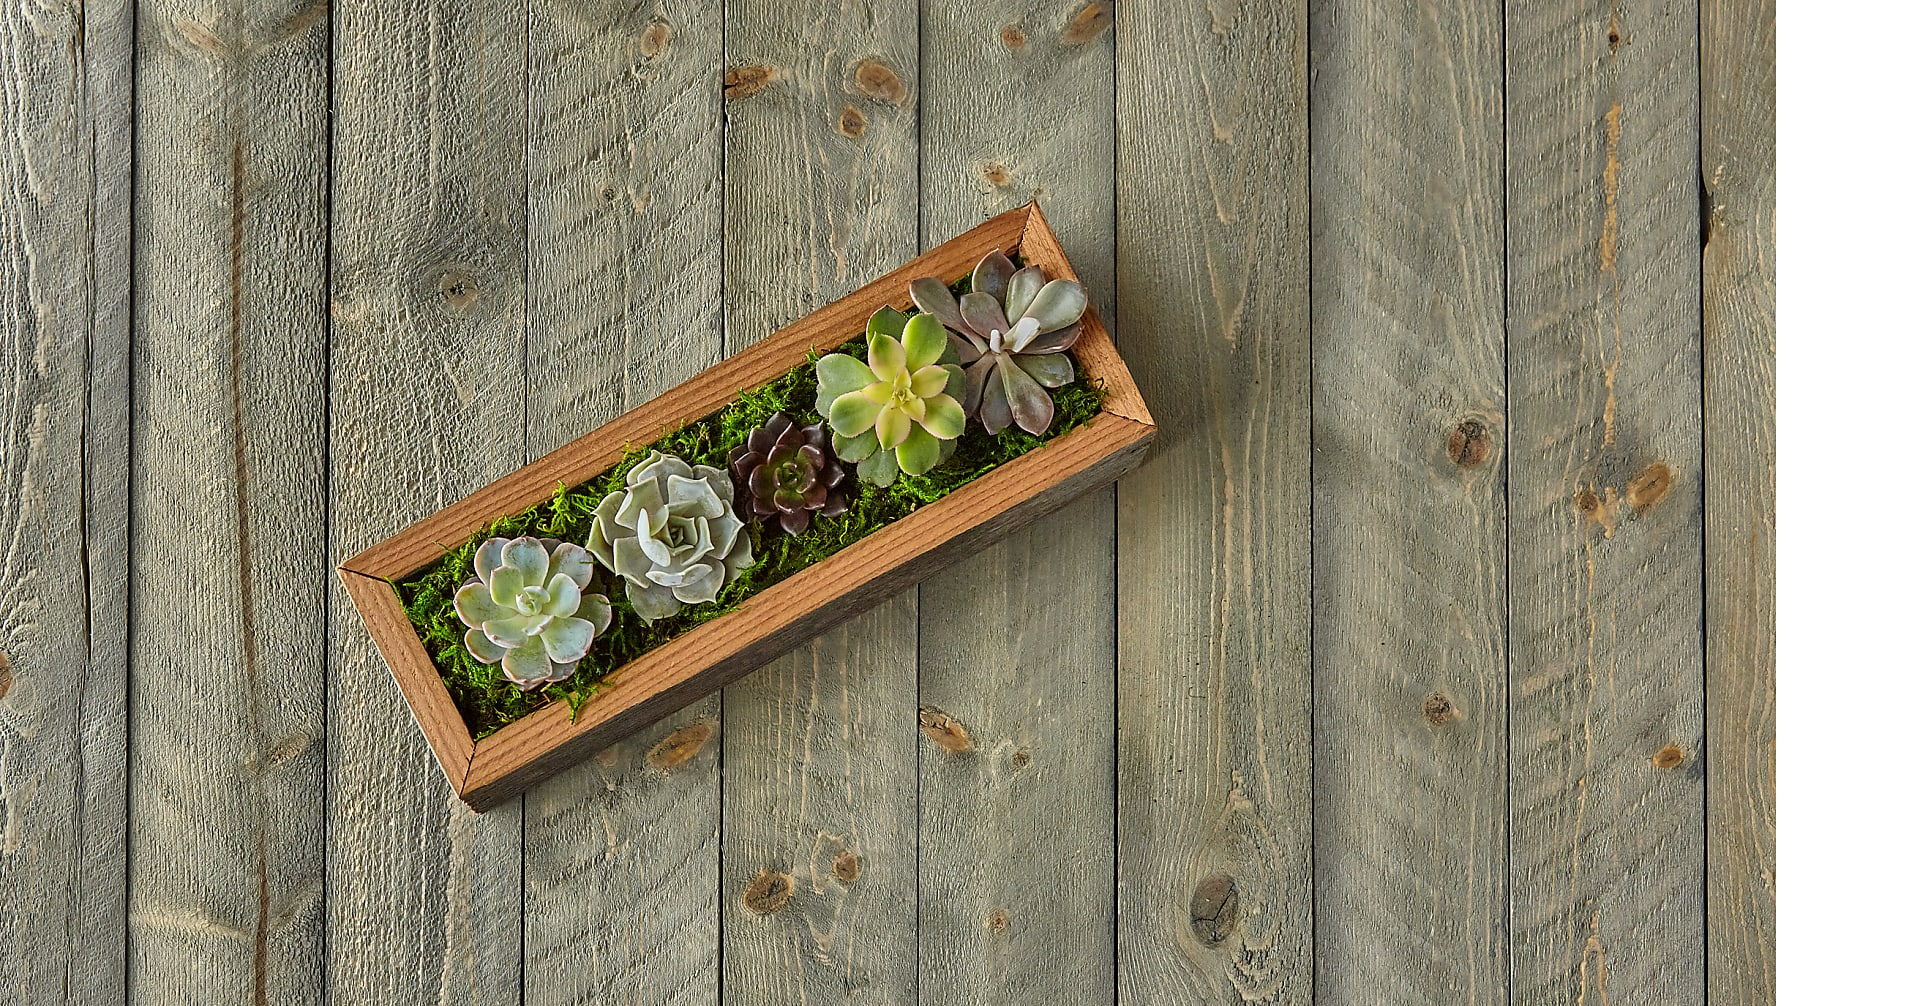 Succulent Garden DIY Kit - Image 2 Of 8